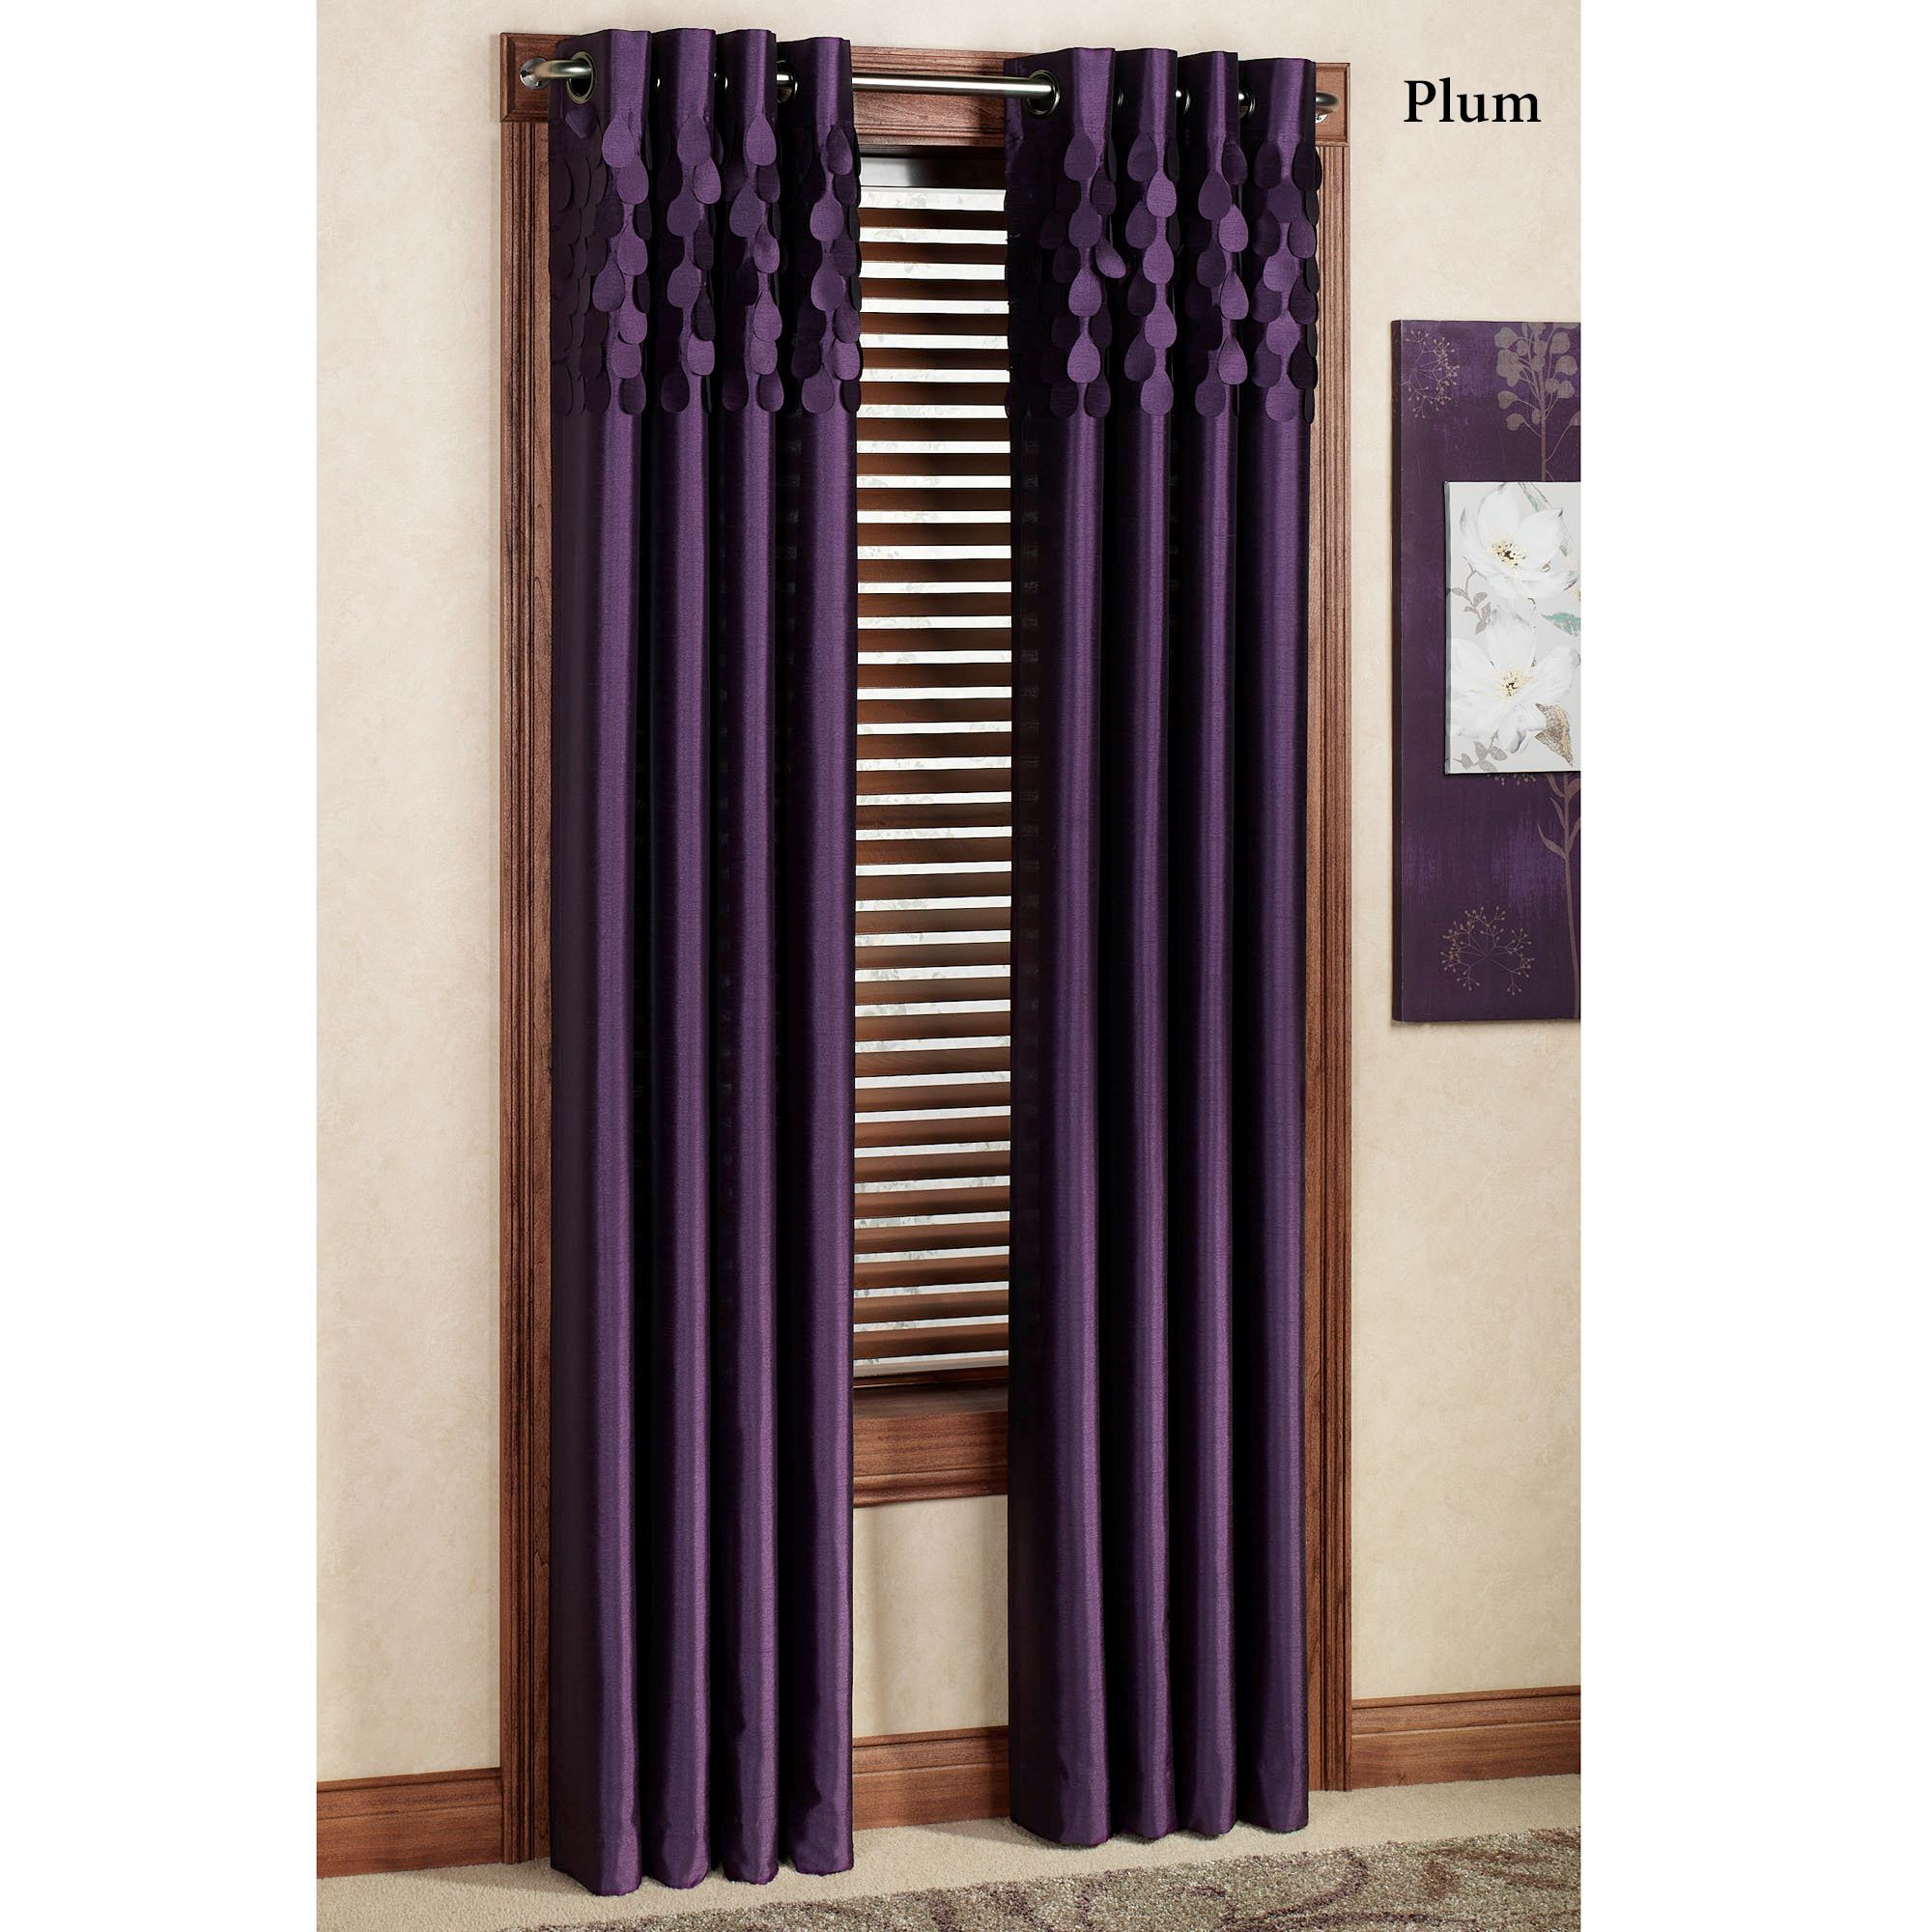 beautiful also room and drapes modern brown sofas that nice white can window blue seems with best design nuance the curtains wooden purple grey be add it floor beauty of inside or has wall bay decor furniture